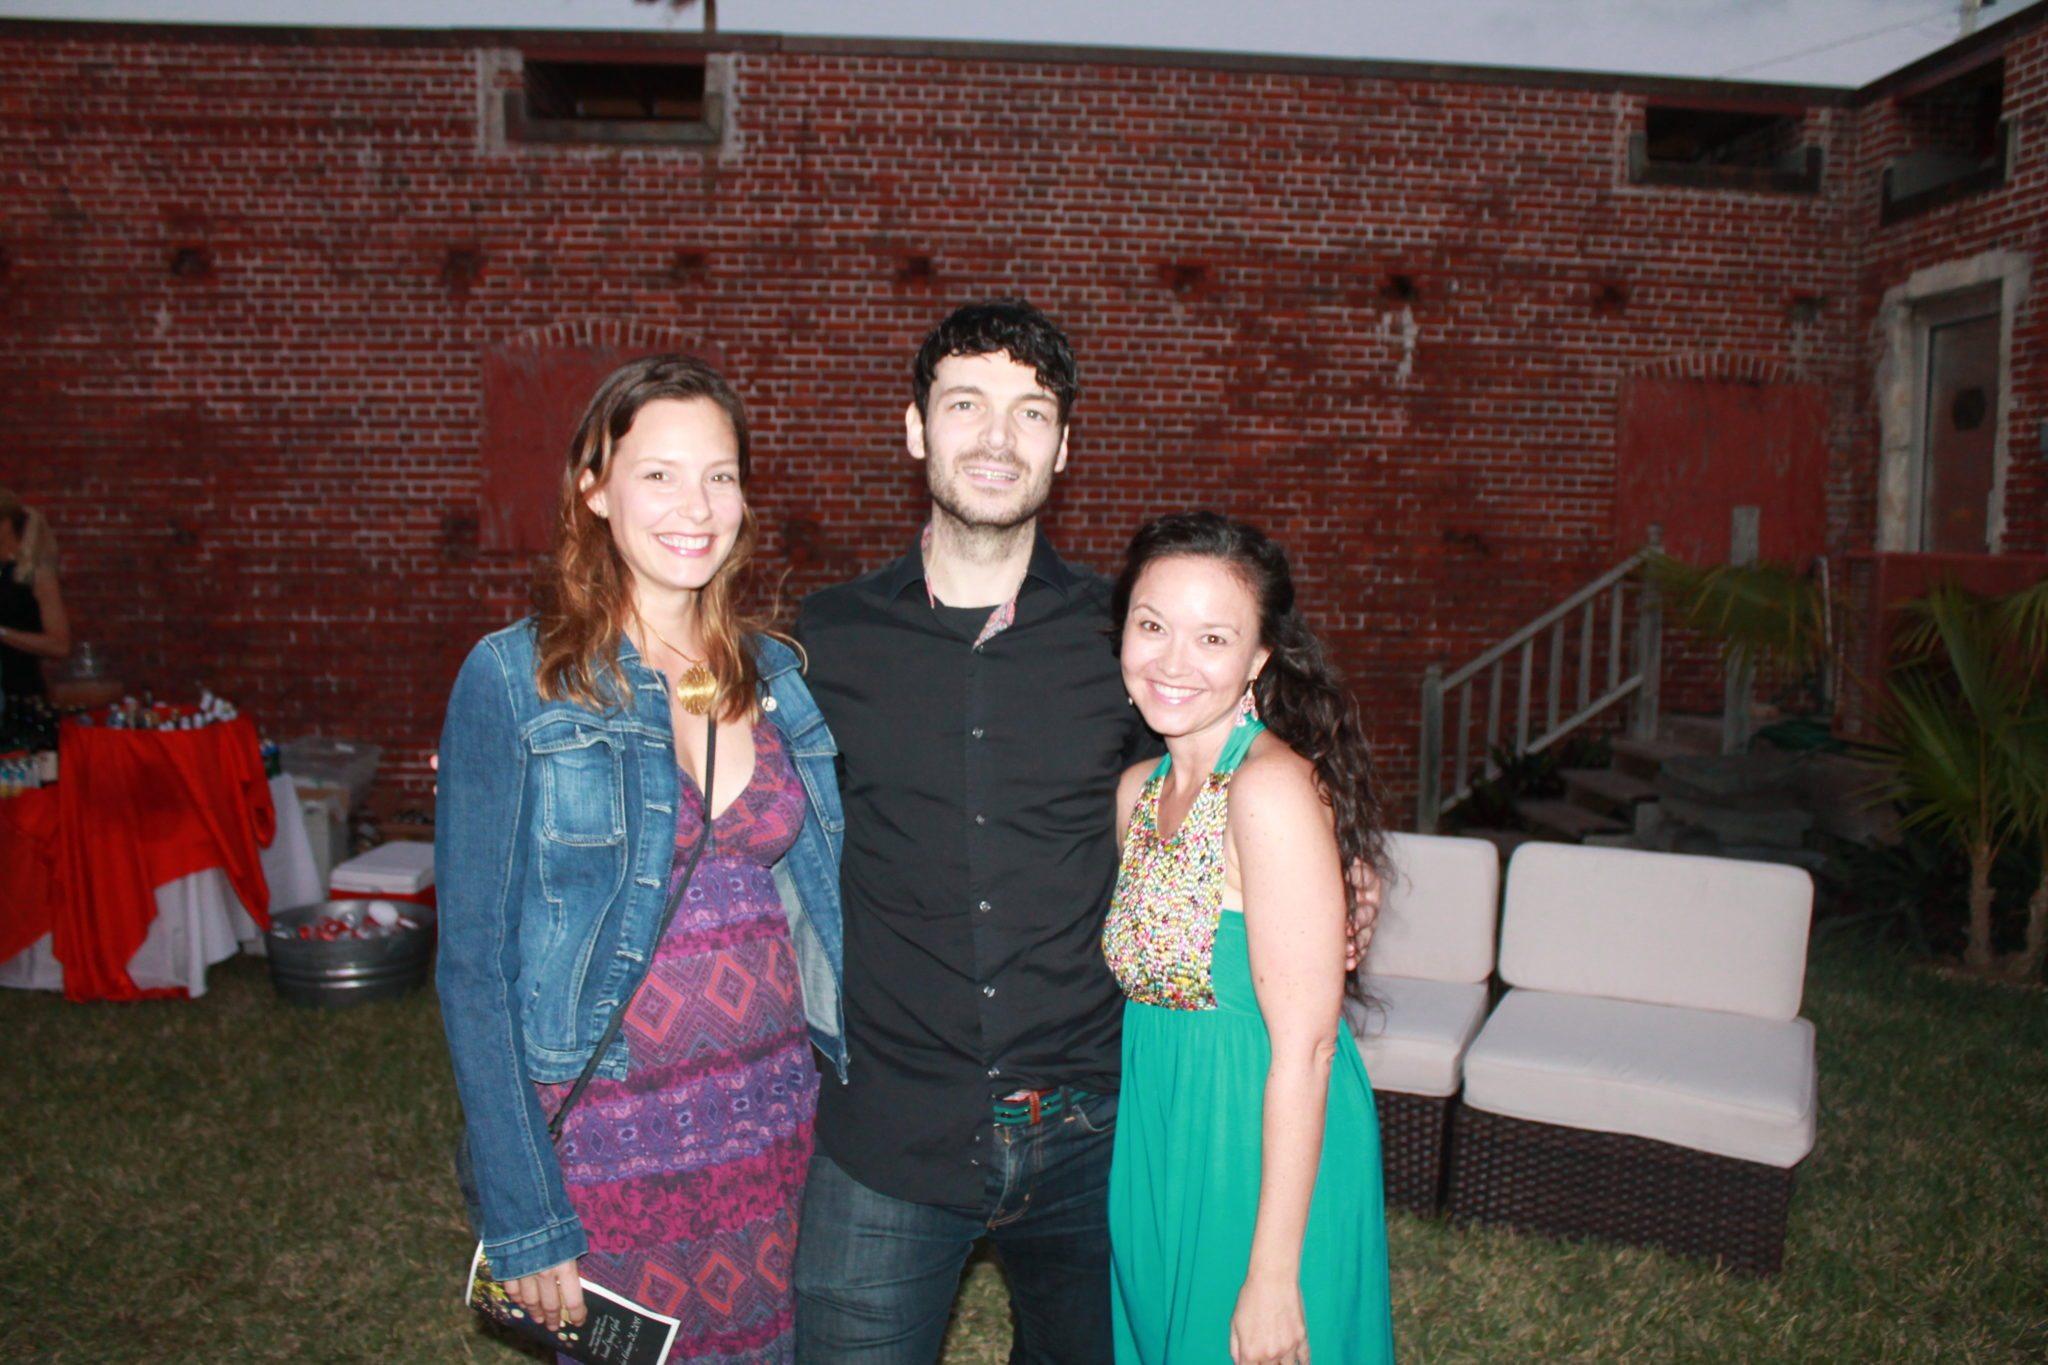 Amber Good and Camila Duke catch up with Will Dailey, four time winner of the Boston music award for best singer and songwriter.